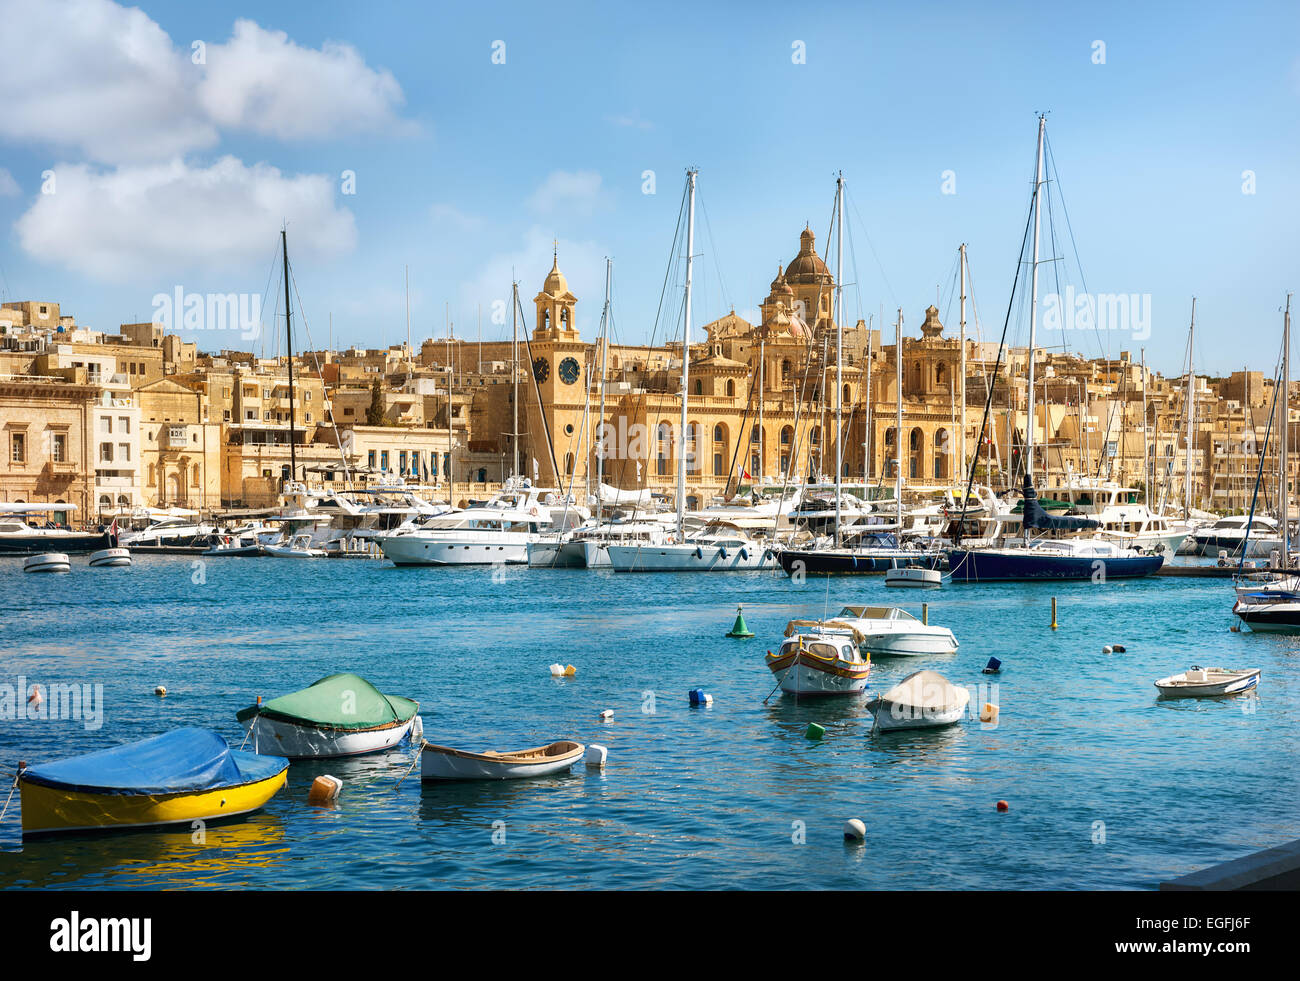 View of town and harbour. Valletta. Malta - Stock Image